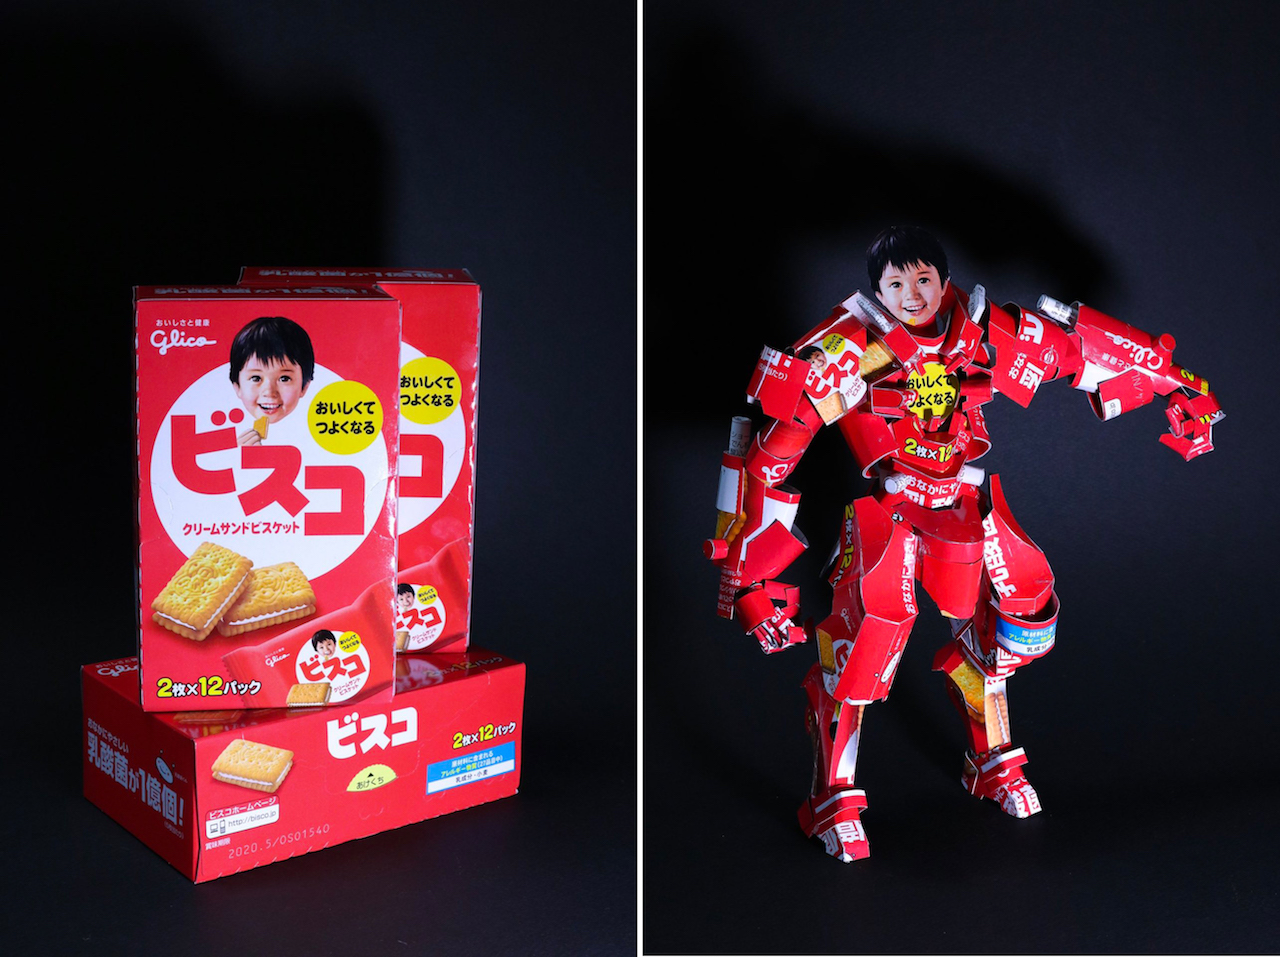 Product Packaging Turned Into Art - 17